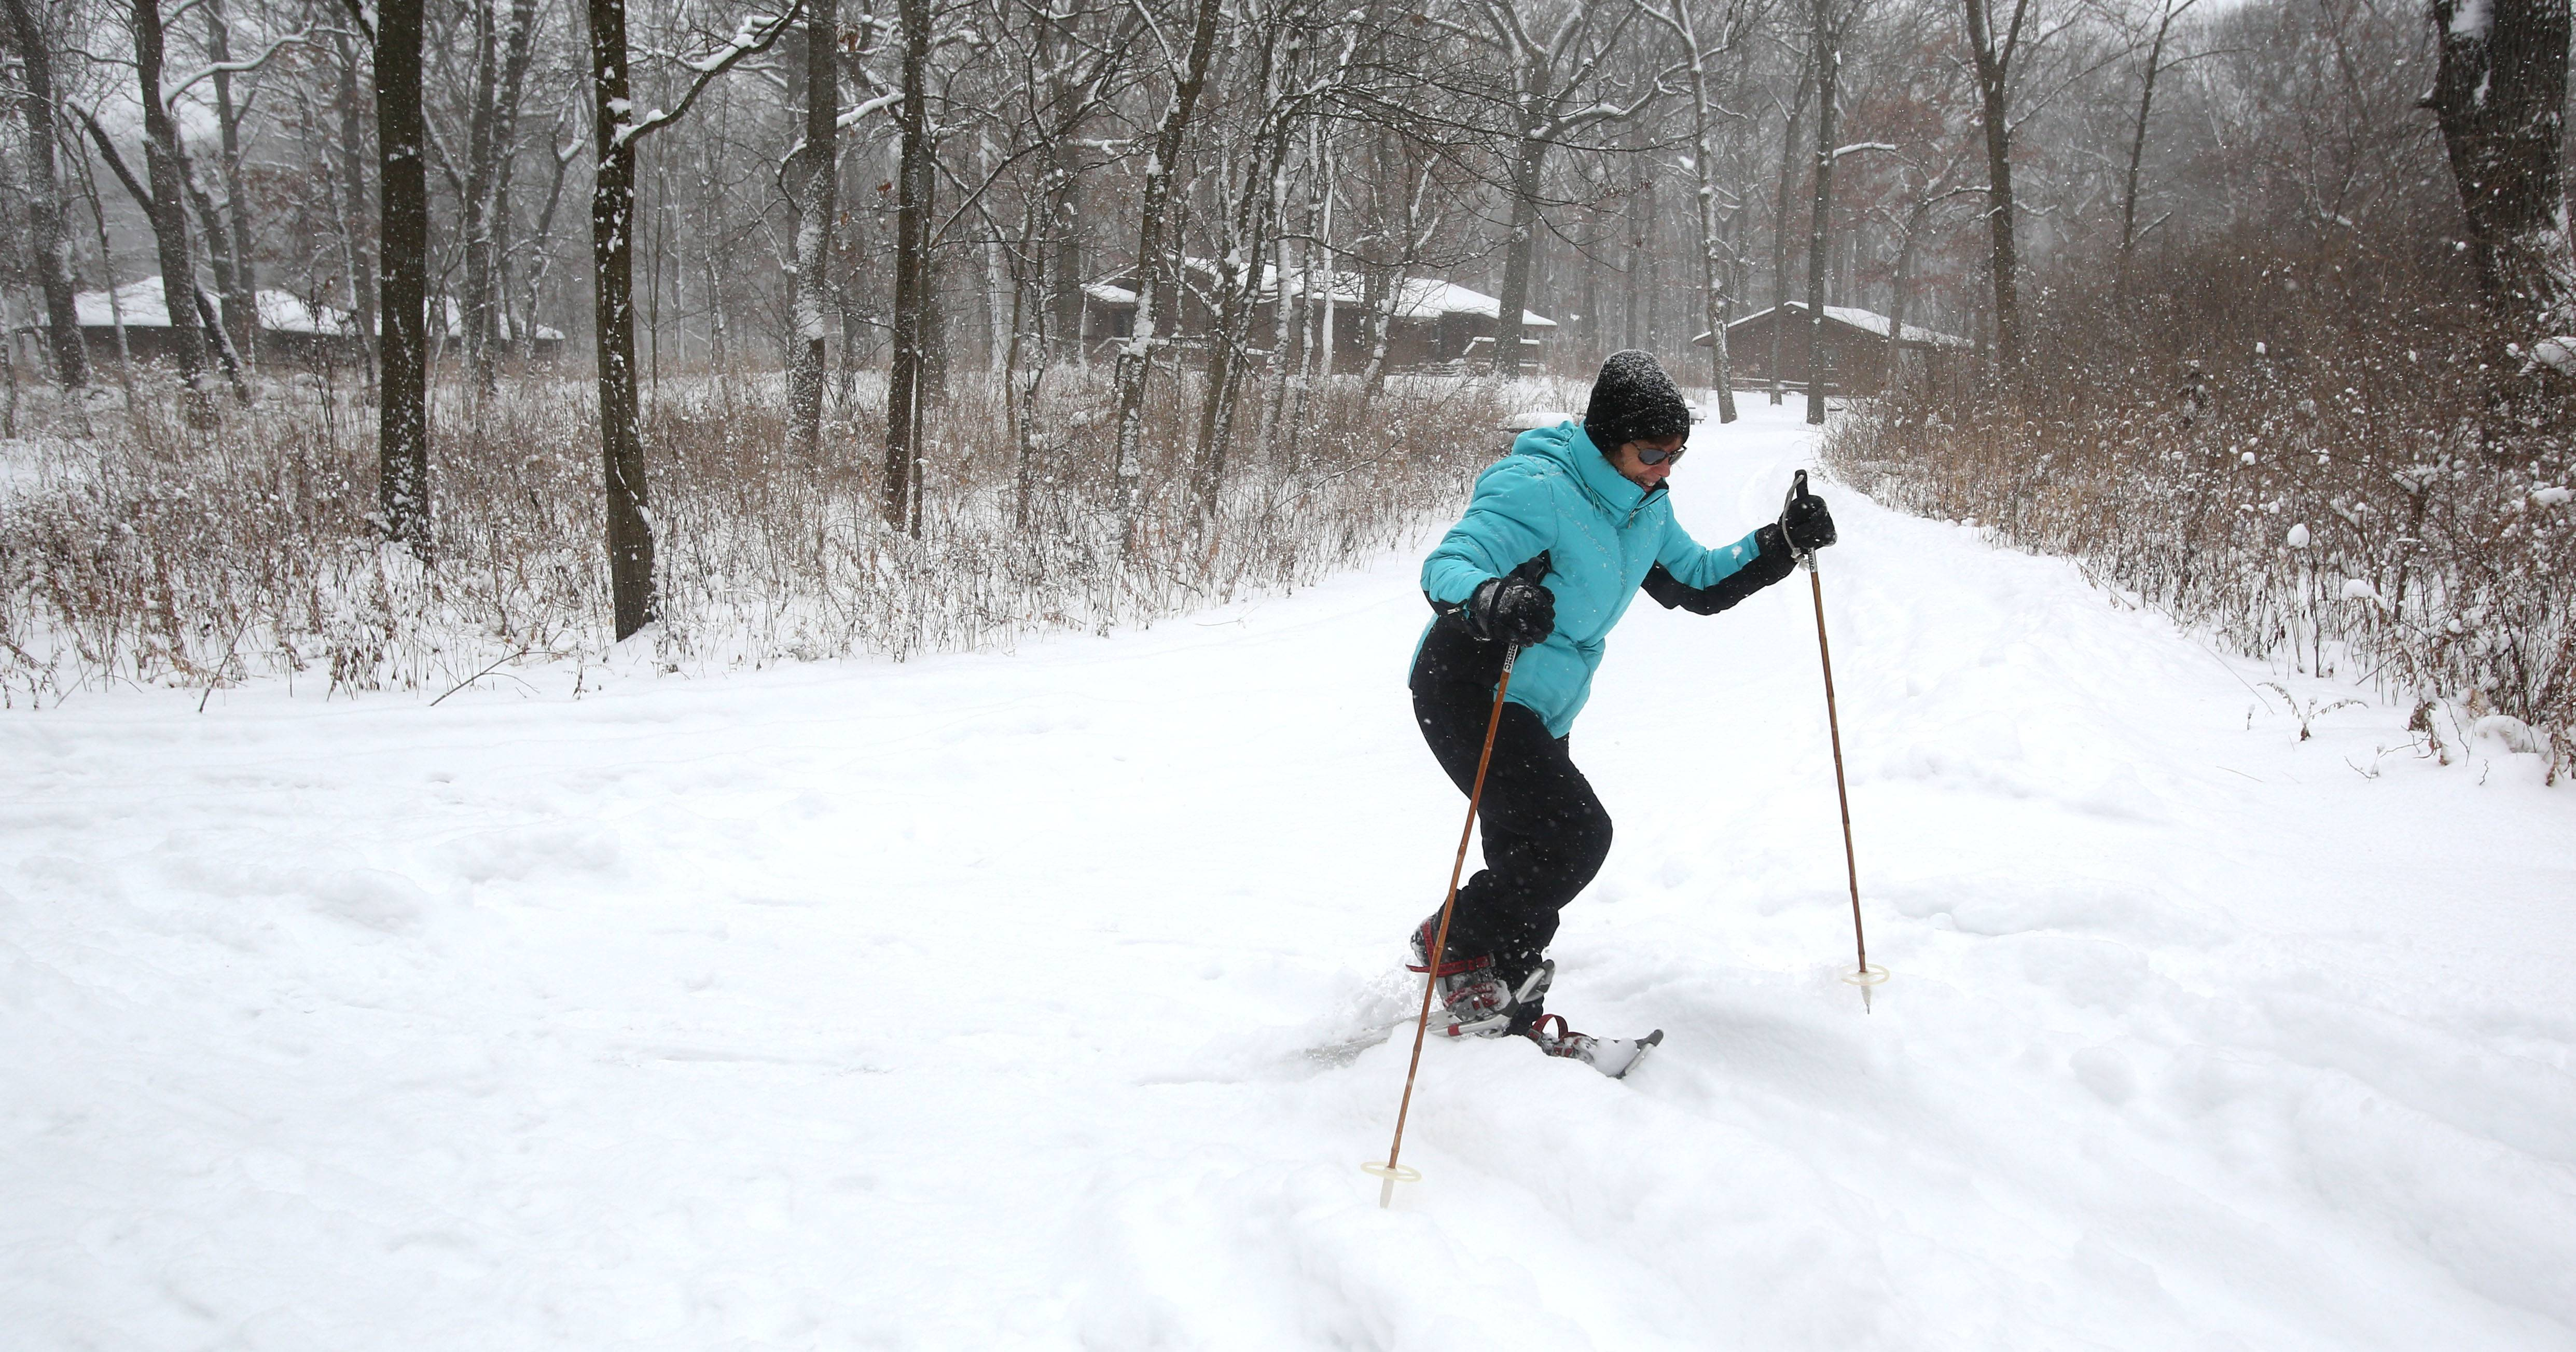 Harriet VerGowe of Western Springs enjoys snow shoeing at Fullersburg Woods in Oak Brook.